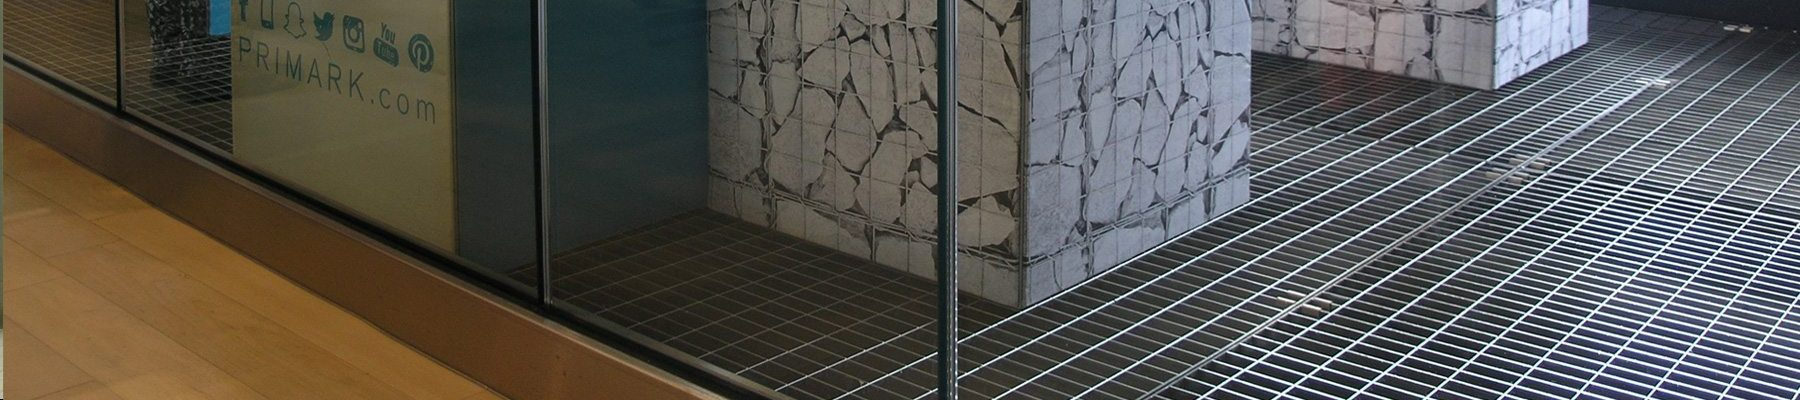 Banner-Primark-stainless-steel-floor-grating